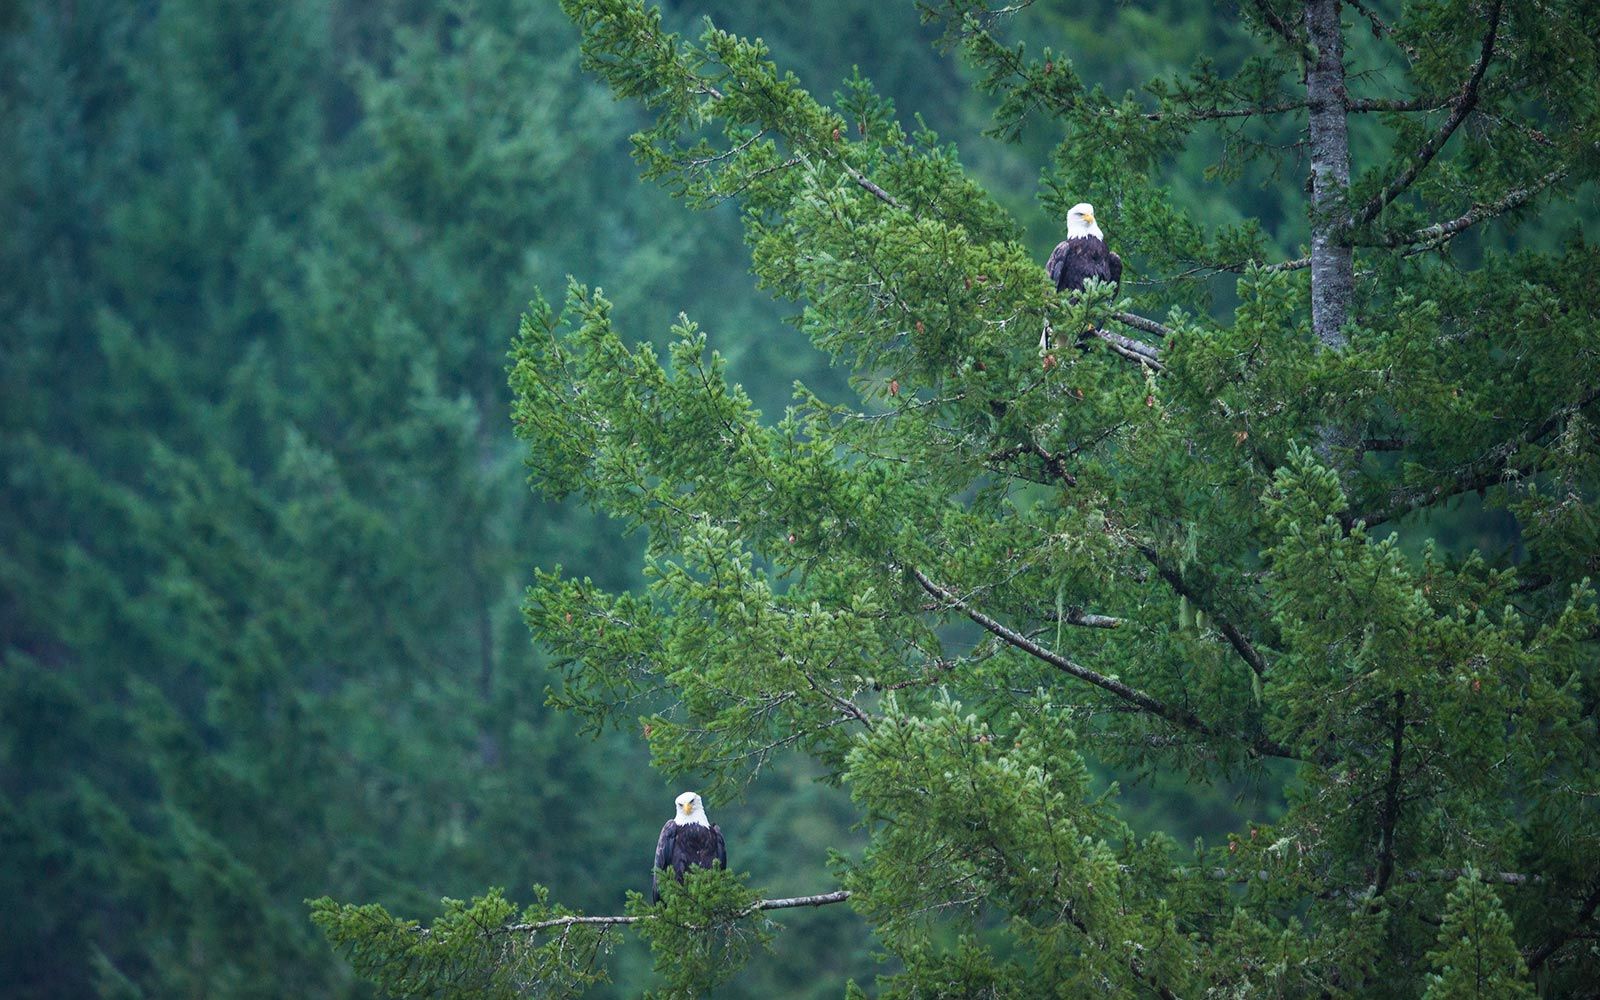 Squamish River Brackendale Vancouver British Columbia Bald Eagle